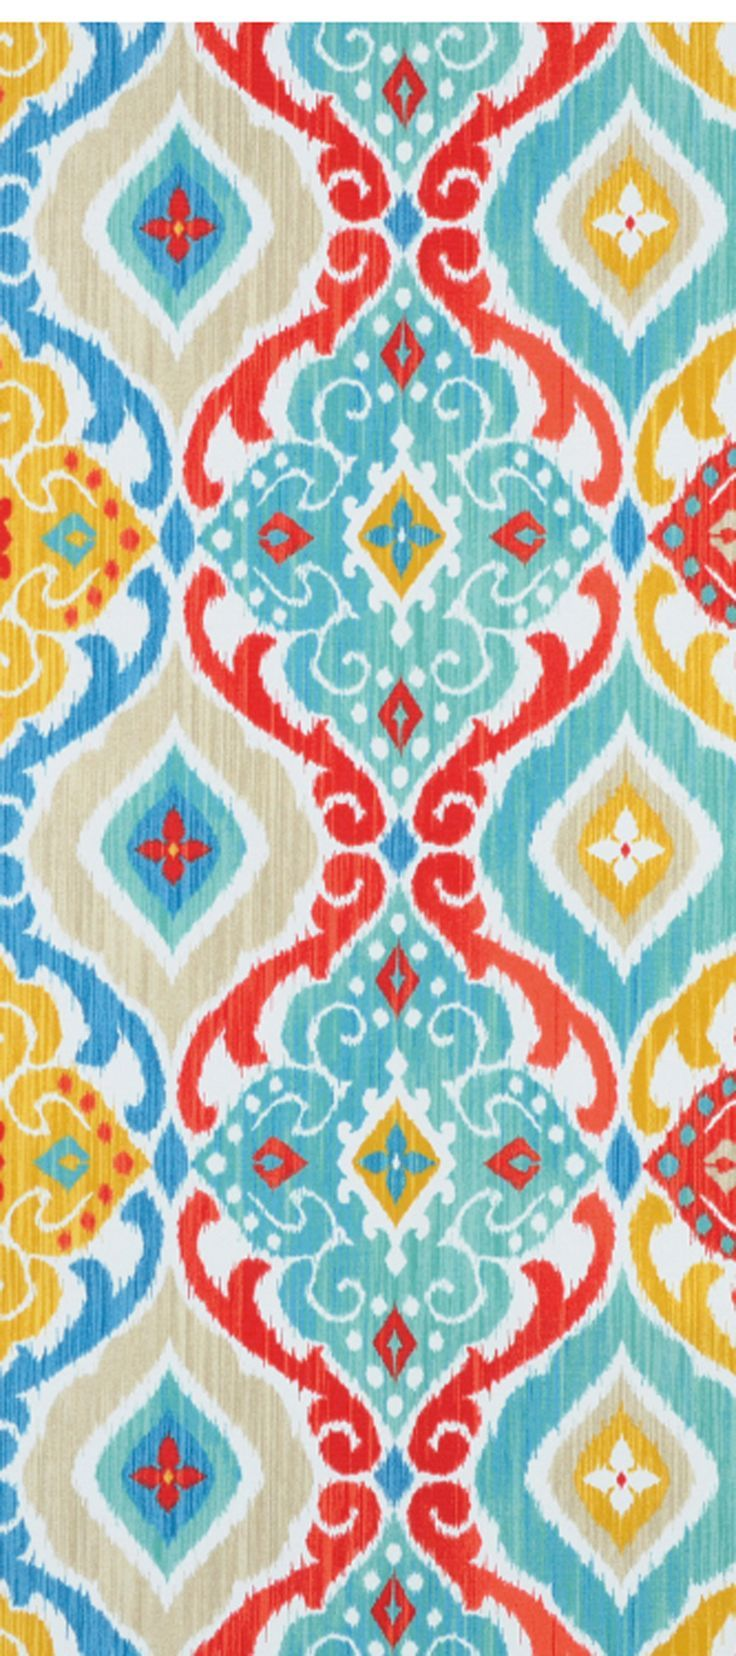 Color palette livingroom red, green, yellow, Navy blue, and turquoise fabric - Google Search